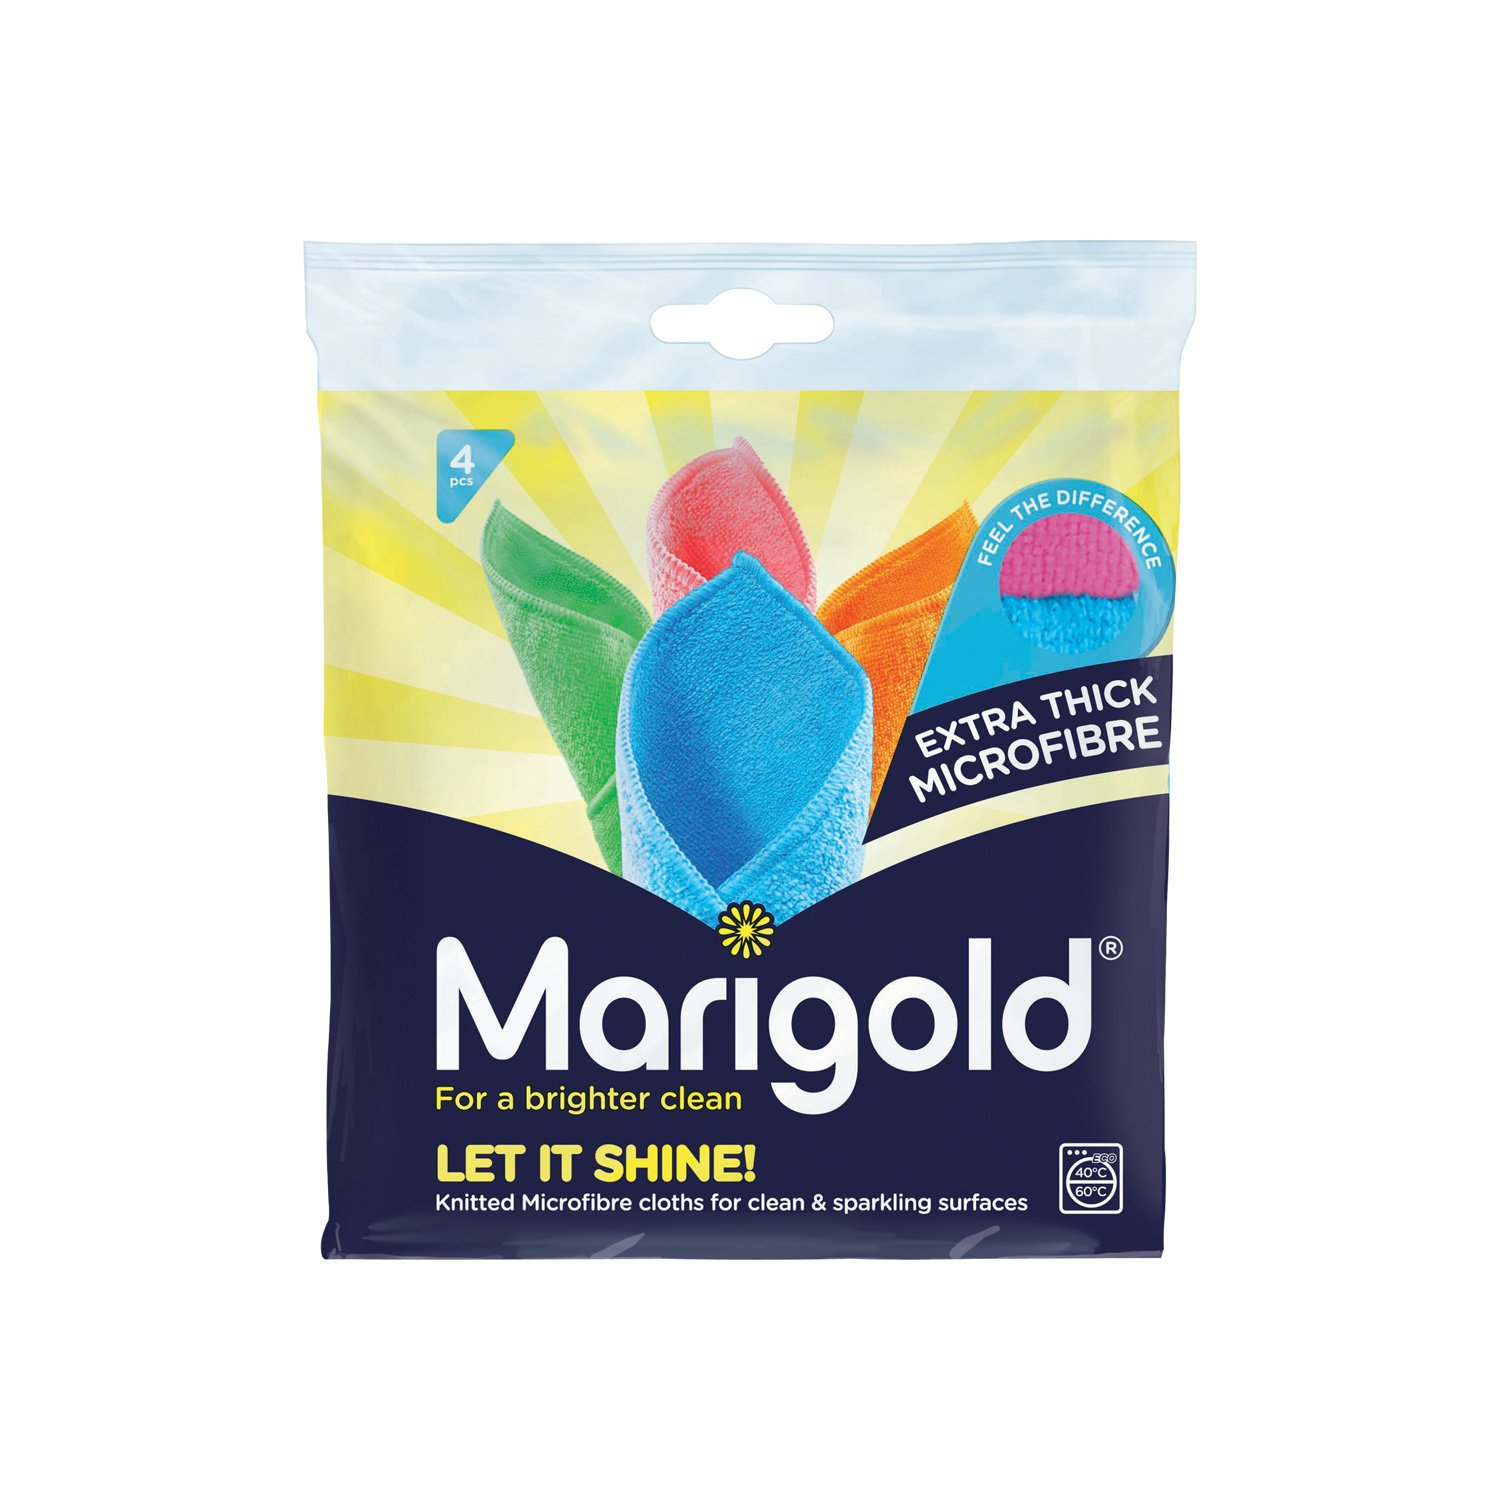 Marigold Let it Shine Extra Thick Microfibre Cloths, Multicolour, 5 Packs of 4 Cloths